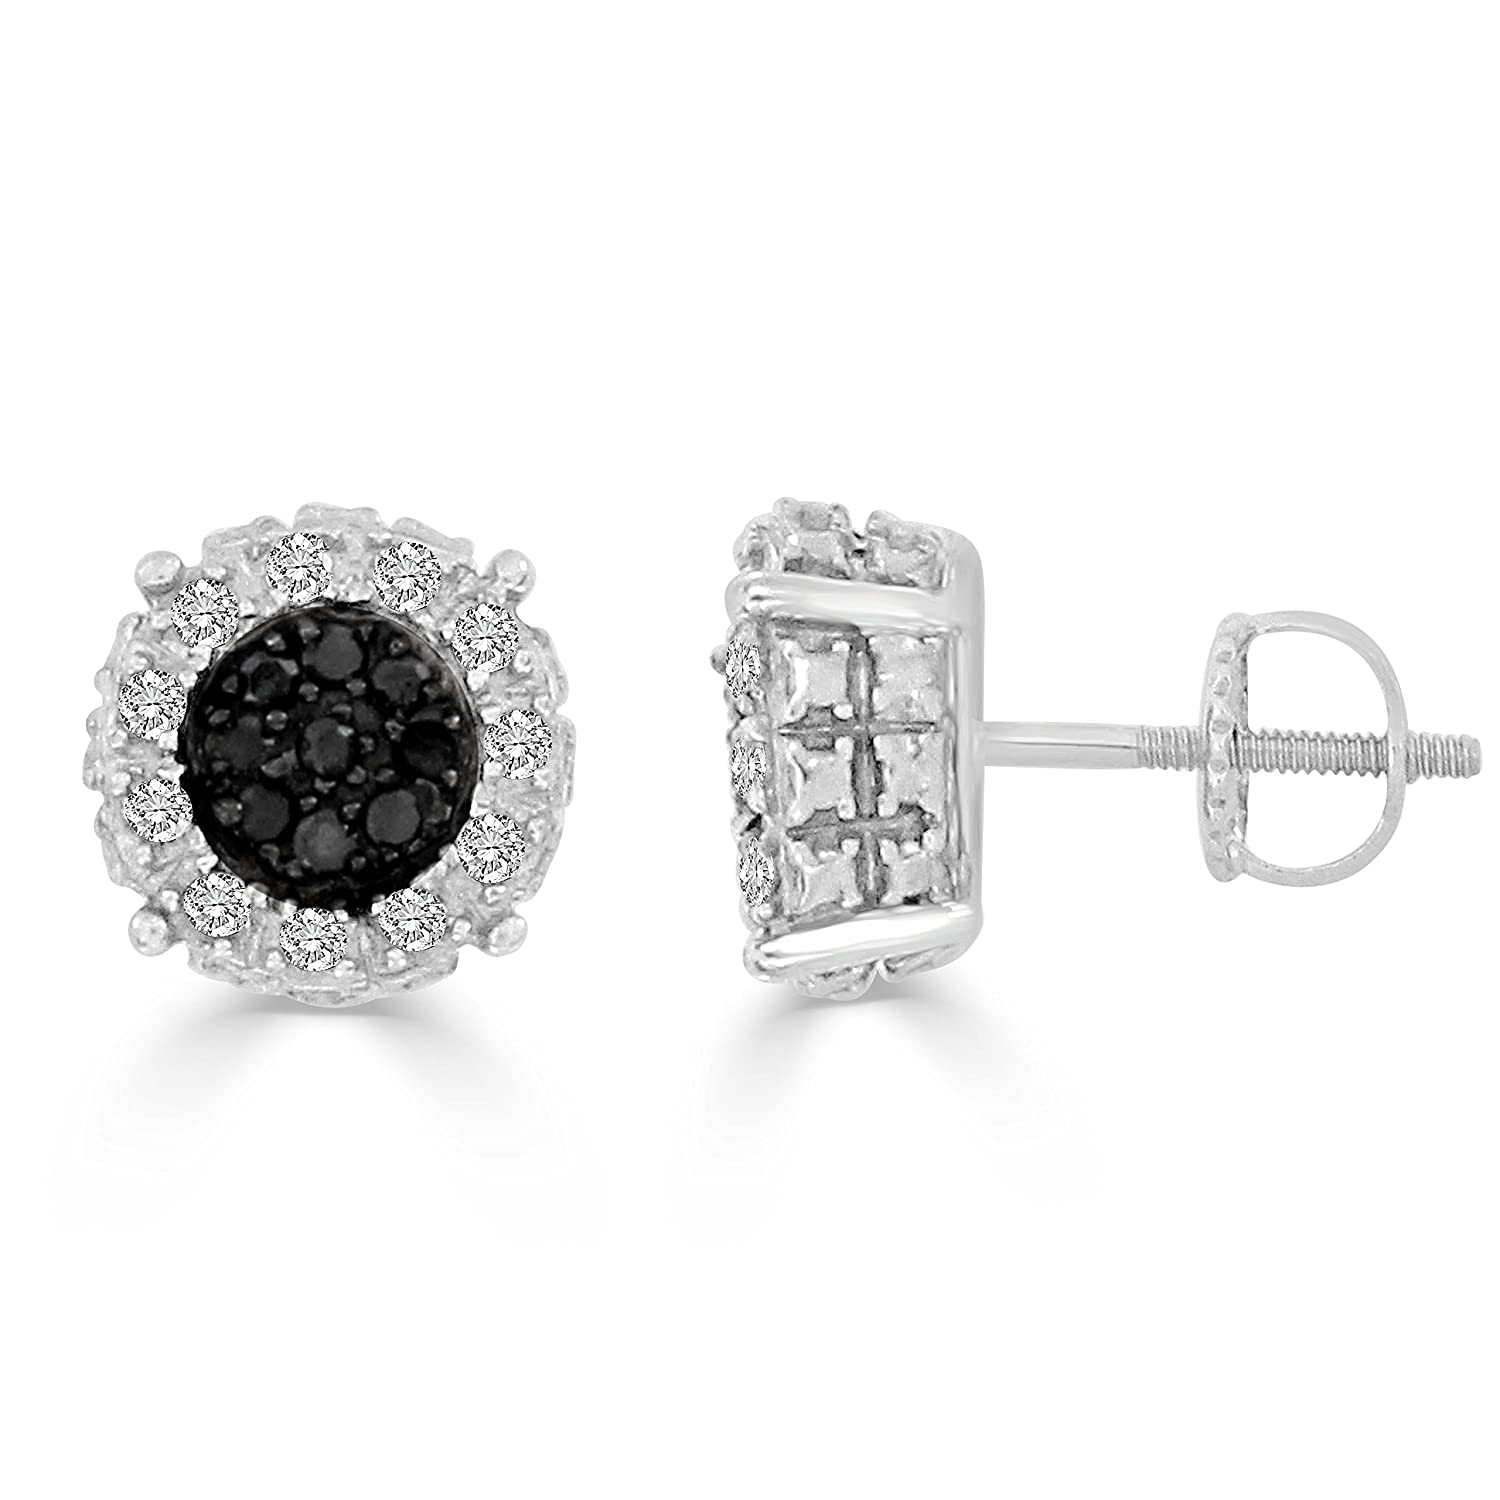 Round Black /& White Diamond Cluster Stud Earrings 1//6 cttw, H-I /& Black Color, I2-I3 /& Heat-Treated Clarity